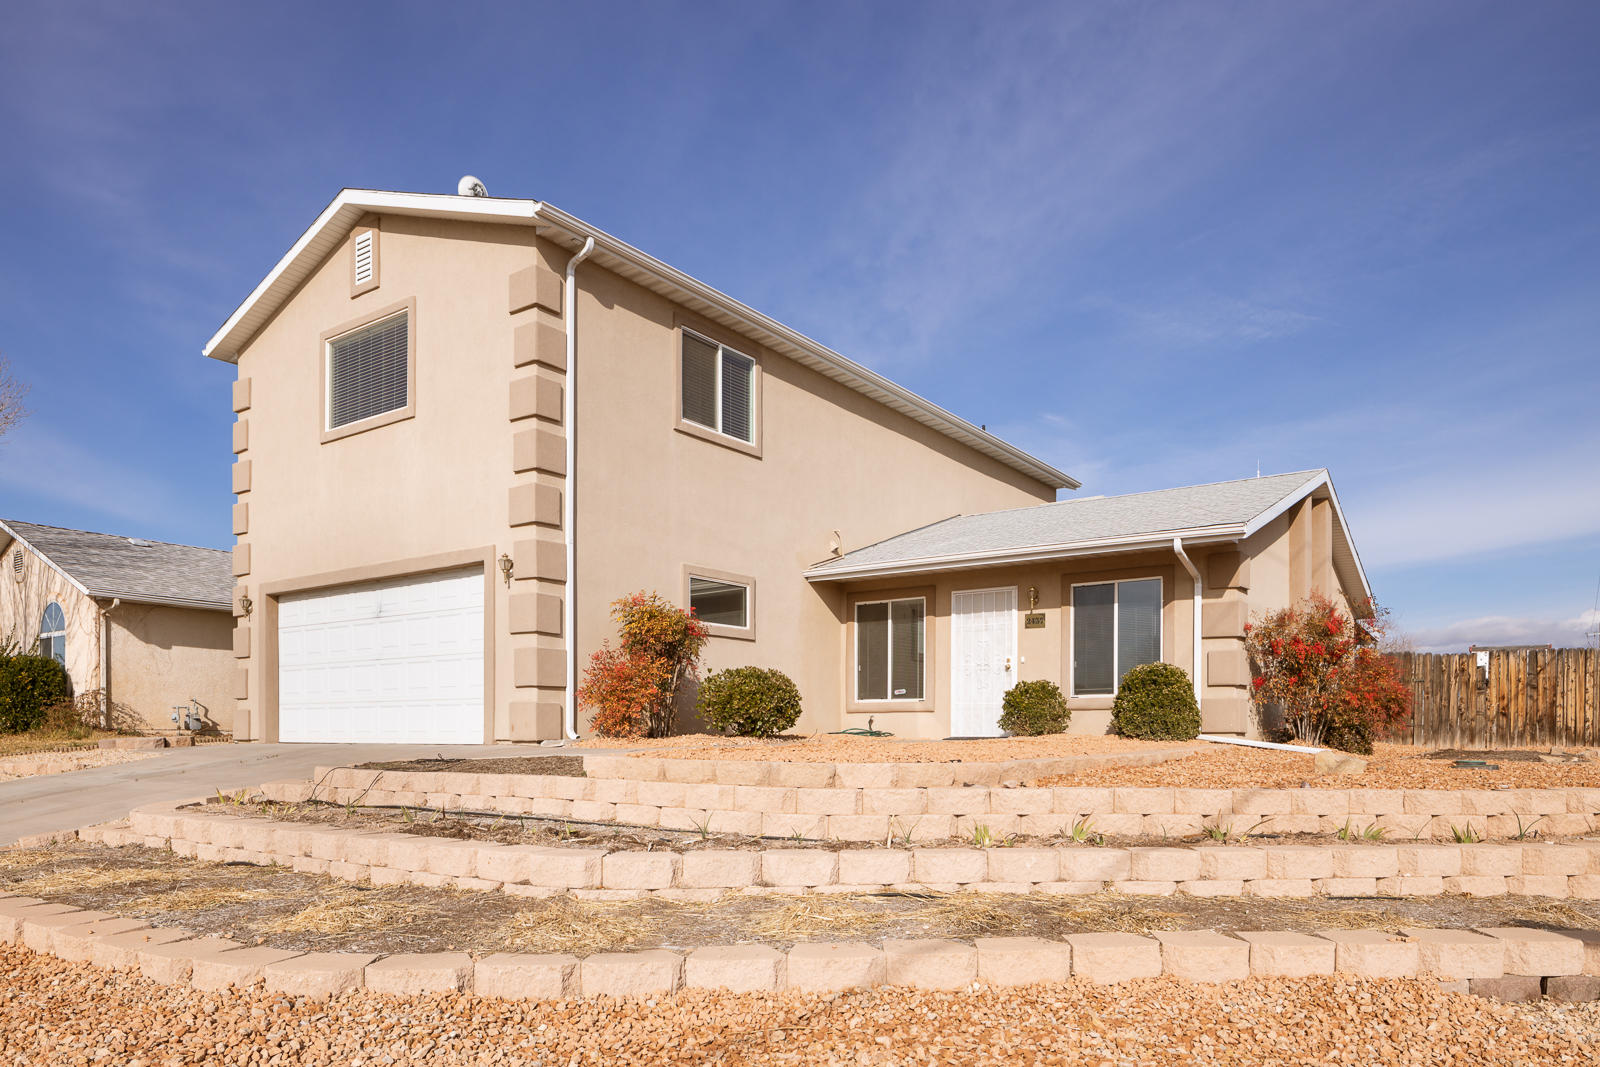 2437 E 480 N Cir, St George Ut 84790